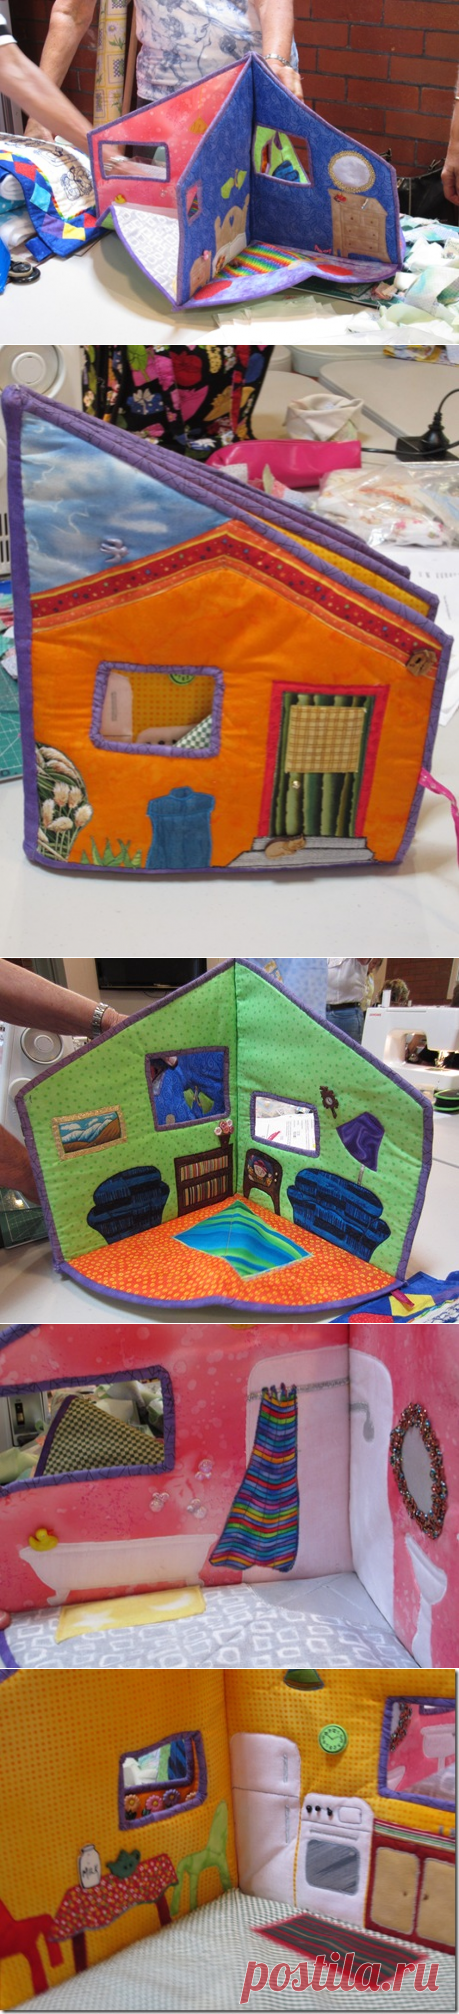 Snippets 'n' Scraps: Gillian's Doll's House